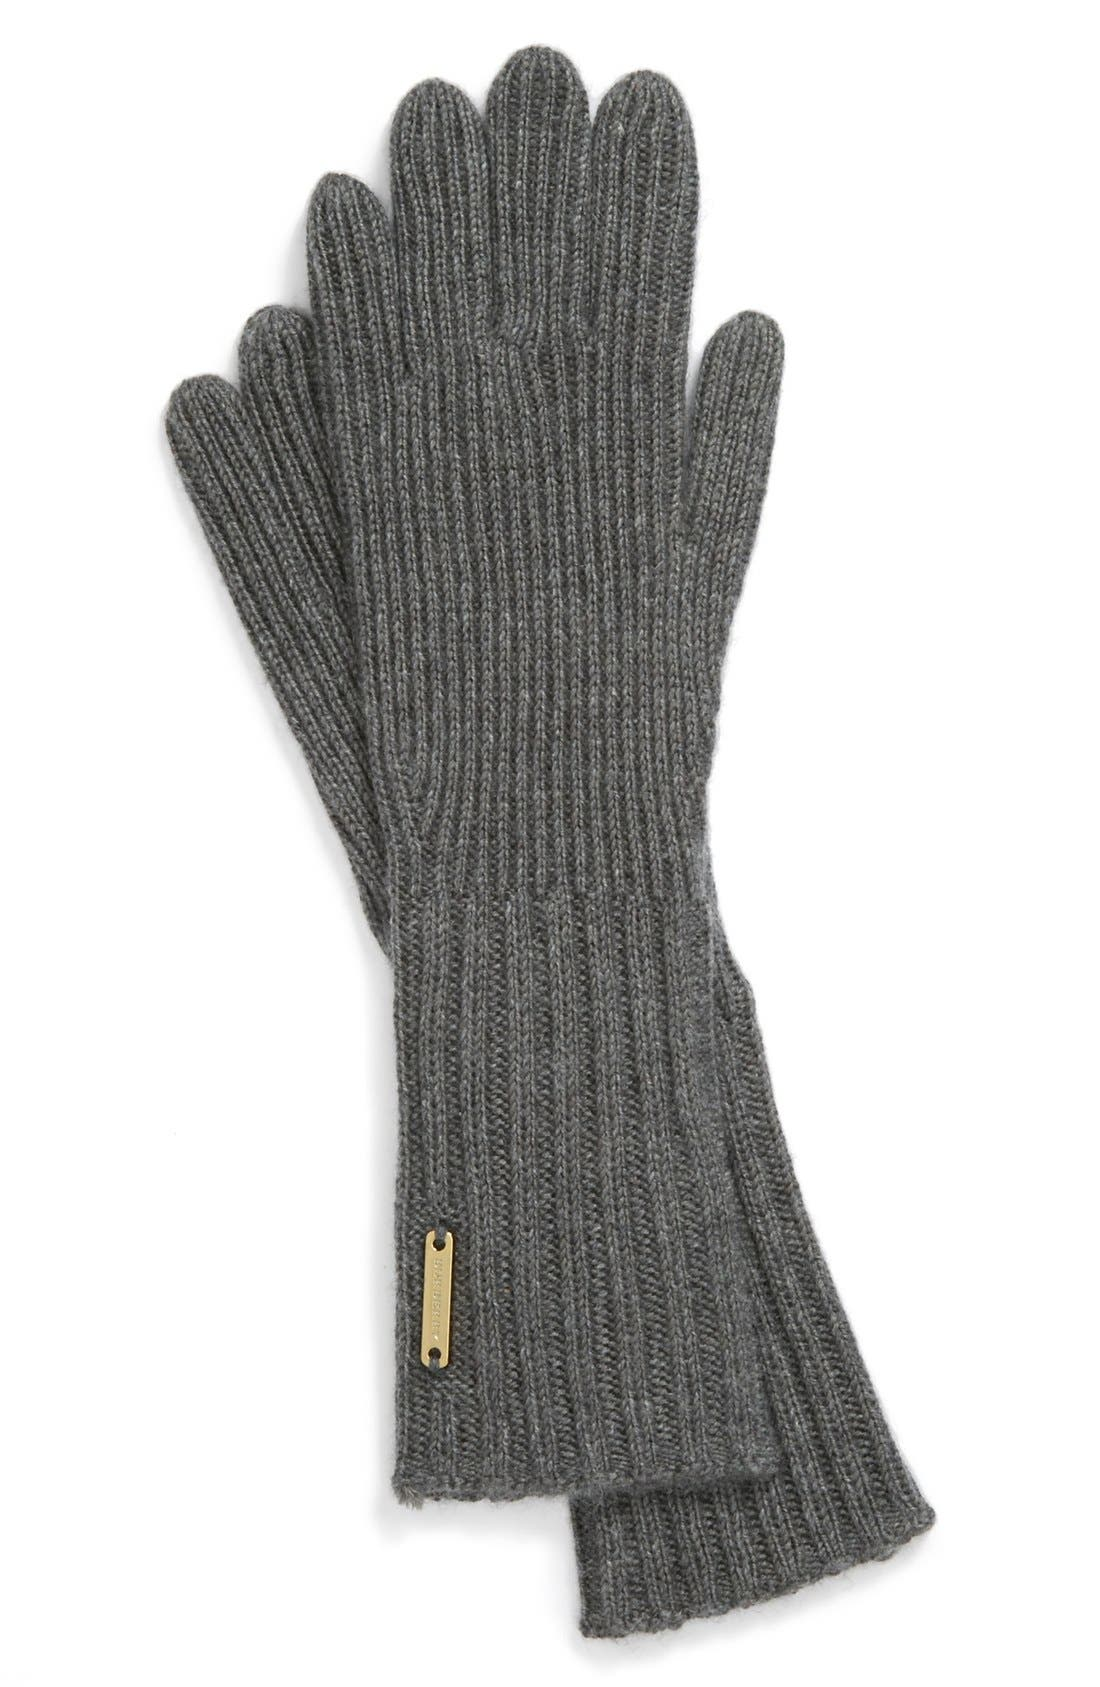 Alternate Image 1 Selected - Burberry Cashmere Blend Touch Tech Knit Gloves